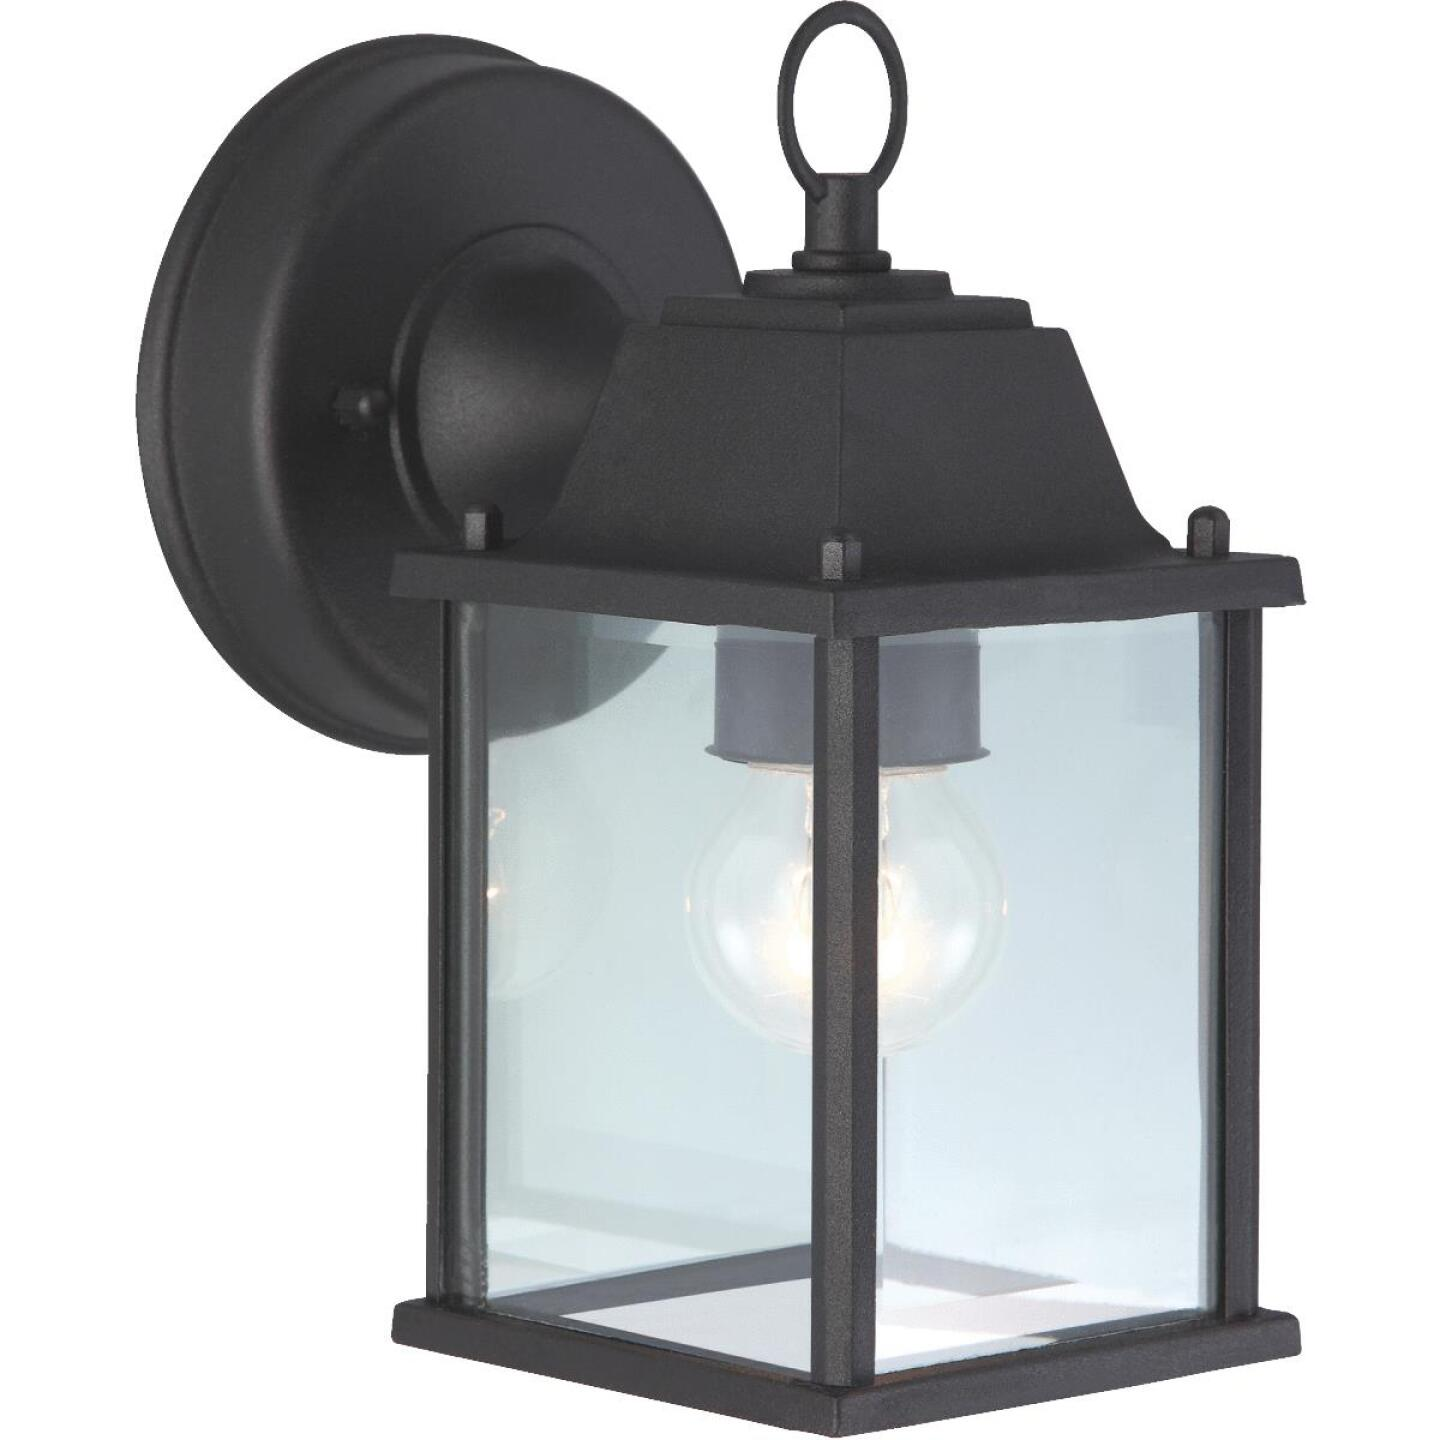 Home Impressions 100W Incandescent Black Lantern Outdoor Wall Light Fixture Image 1